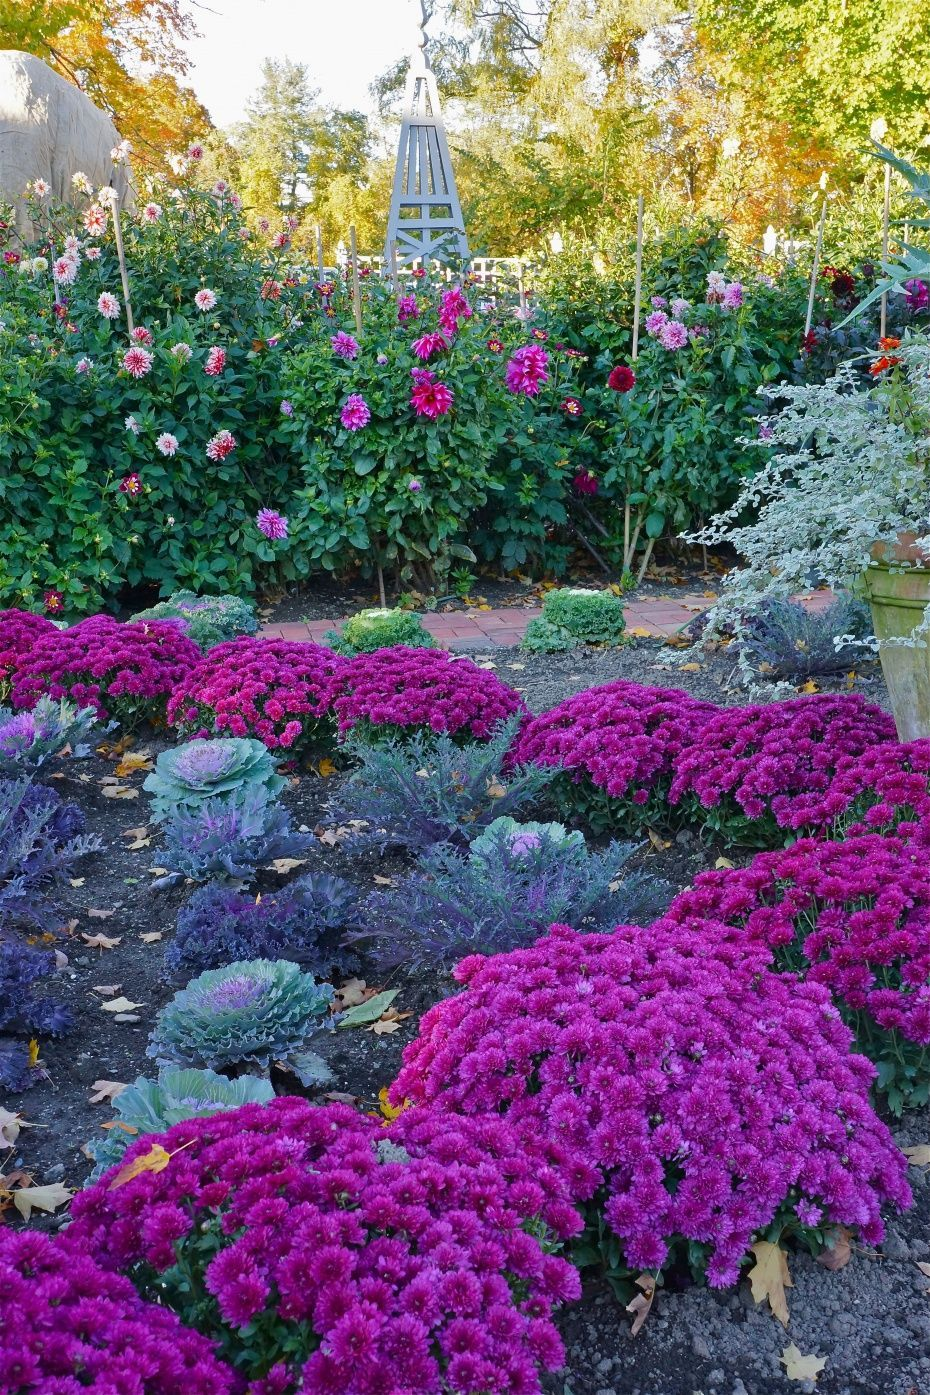 Mums and ornamental cabbages